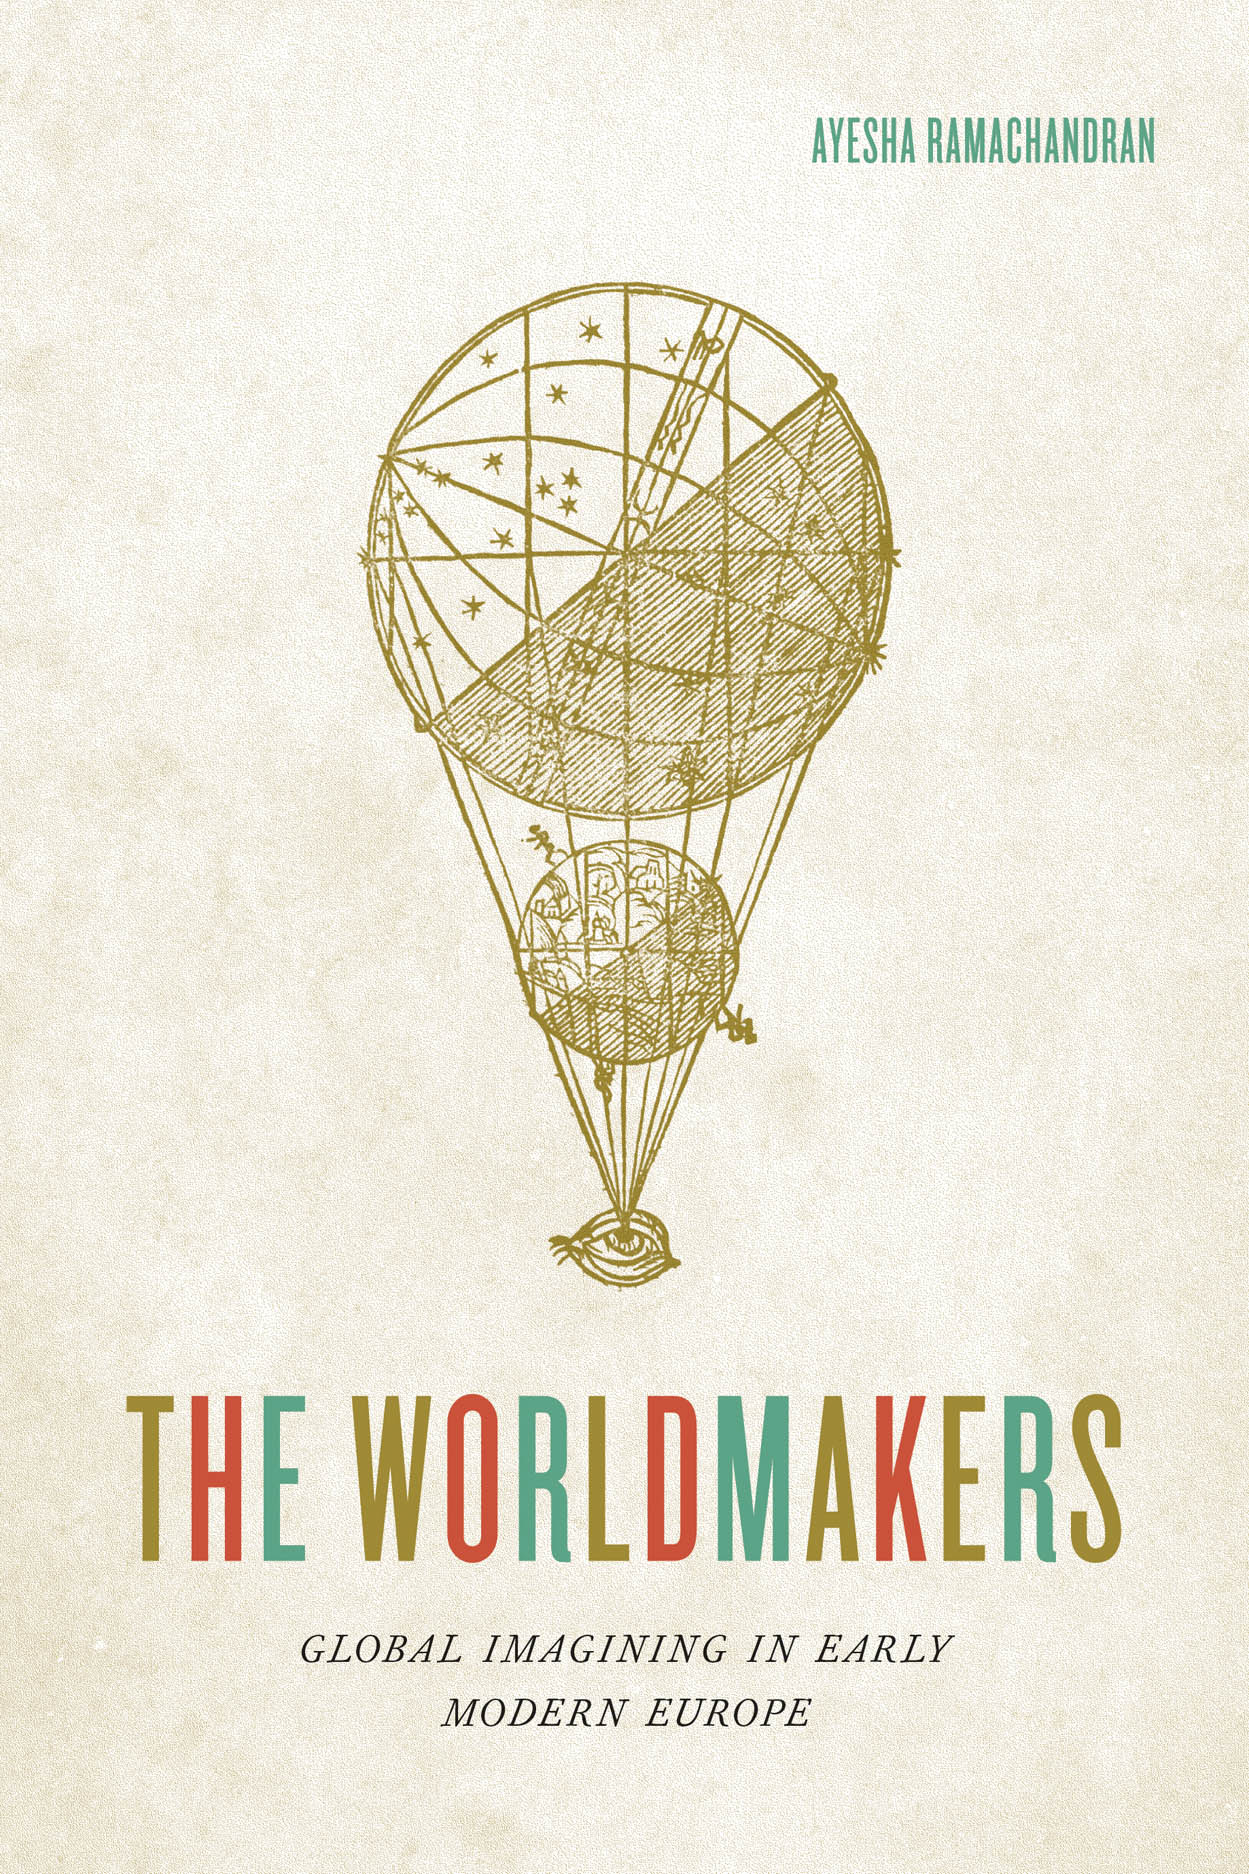 The Worldmakers